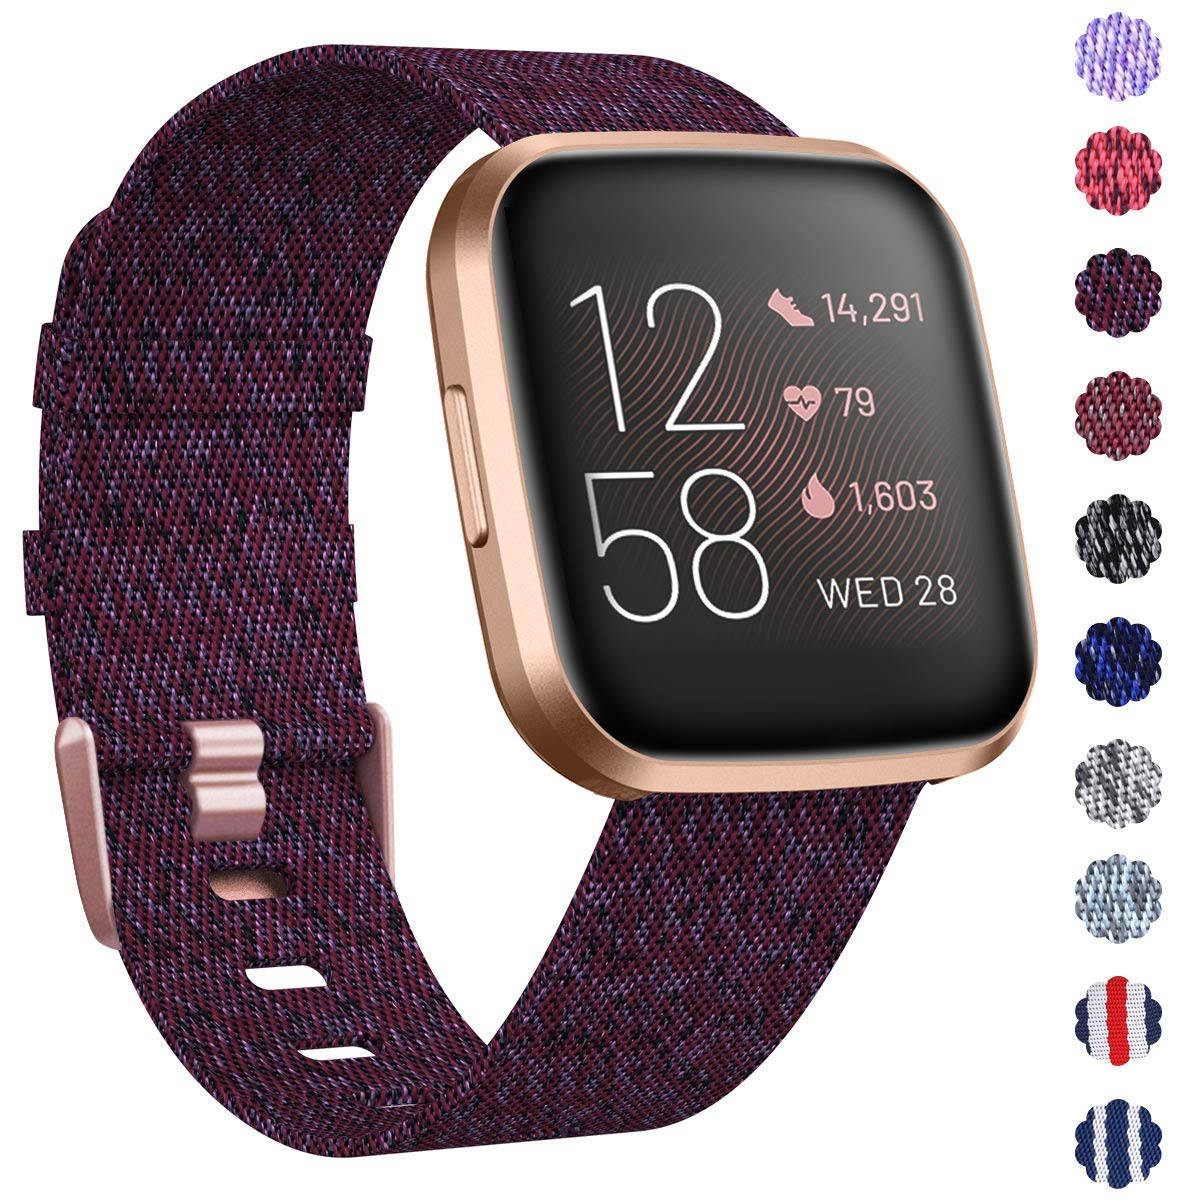 KIMILAR Woven Band Compatible with Fitbit Versa/Fitbit Versa 2/Fitbit Versa Lite Edition, Large Small Woven Fabric…